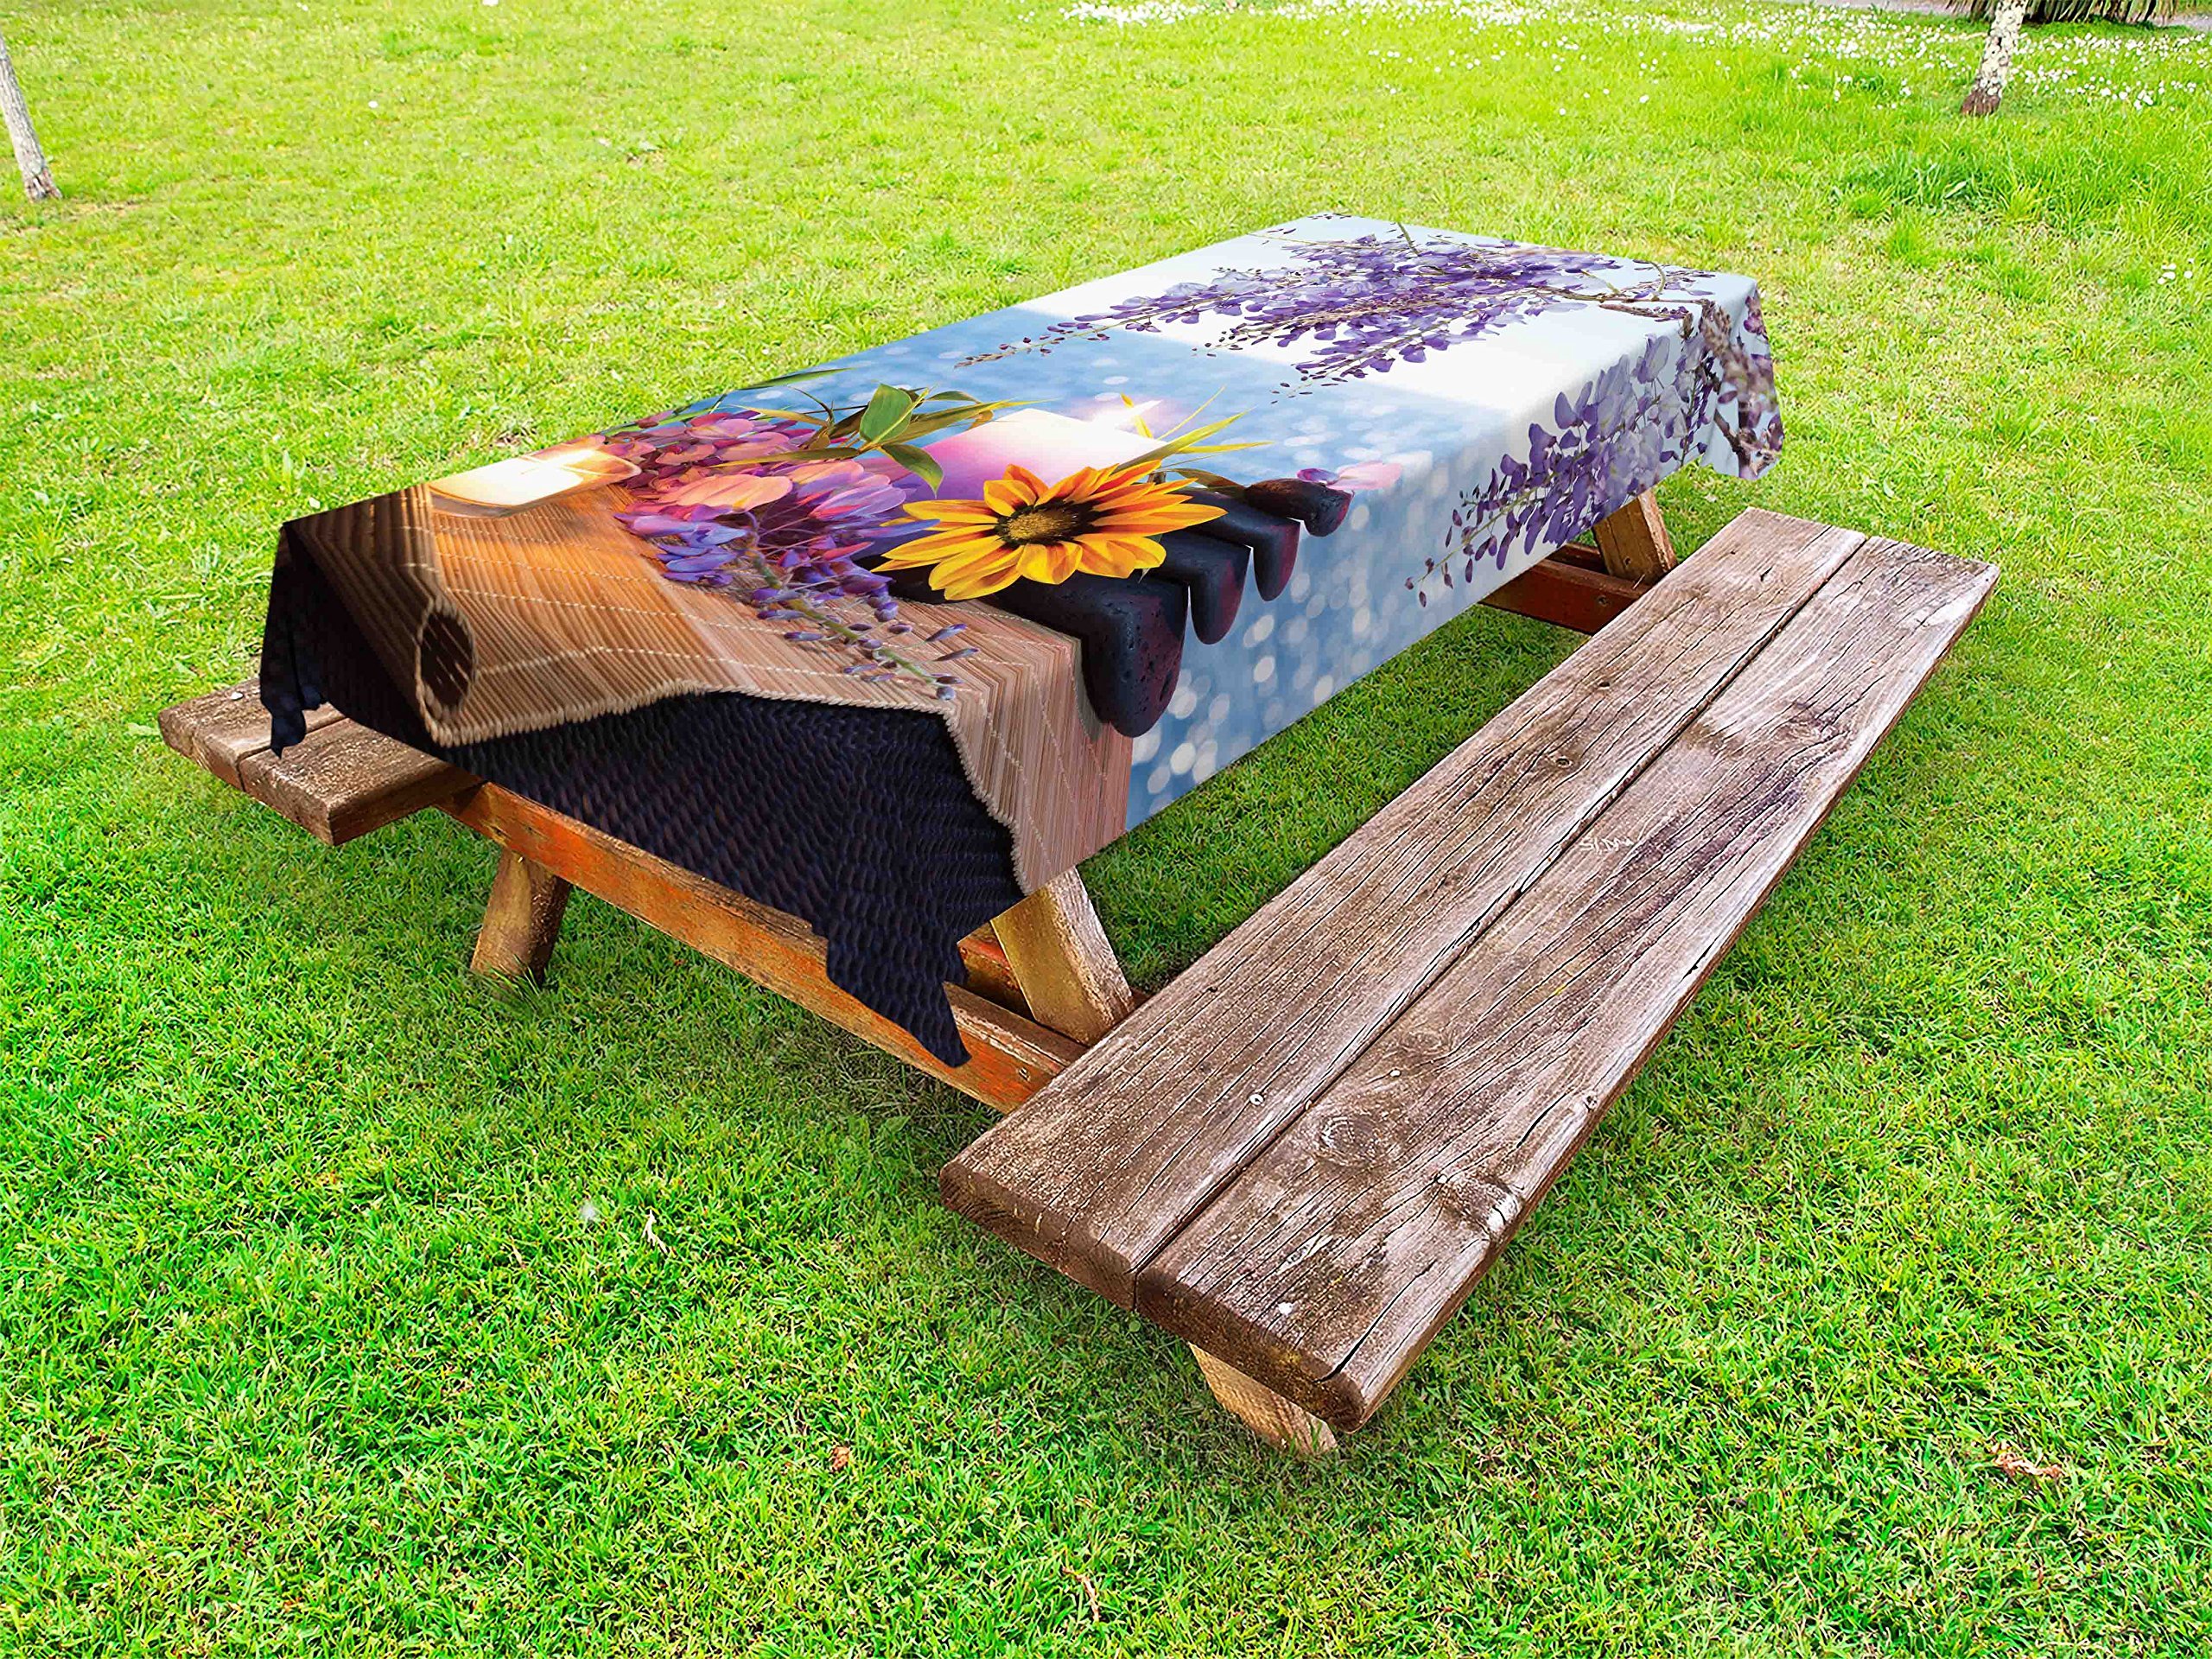 Lunarable Spa Outdoor Tablecloth, Massage Stones with Daisy and Wisteria with The Seabed Foliage Meditation, Decorative Washable Picnic Table Cloth, 58 X 120 inches, Pale Blue Lavander Green